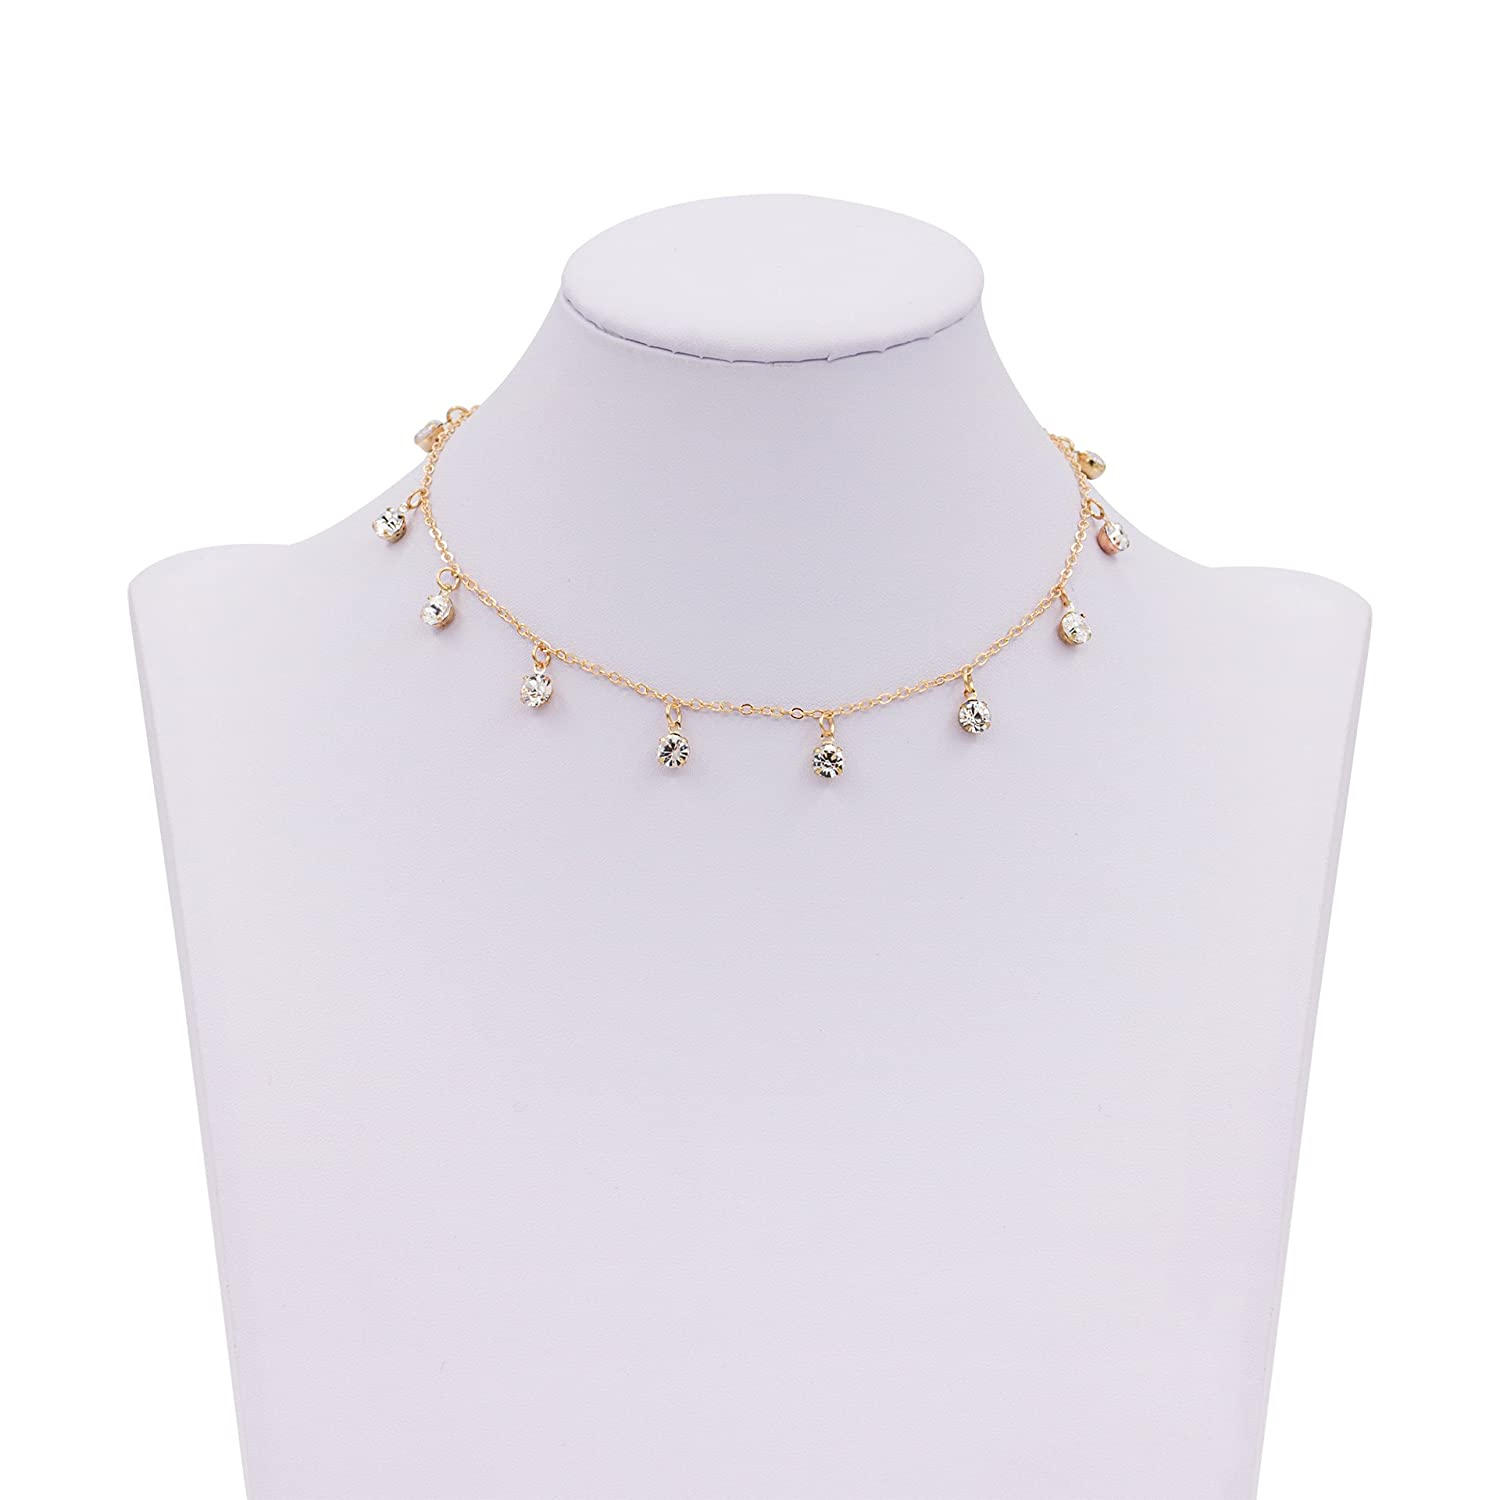 Zealmer Delicate Gold Choker With Sequins Piece Dove White Pearl by Zealmer